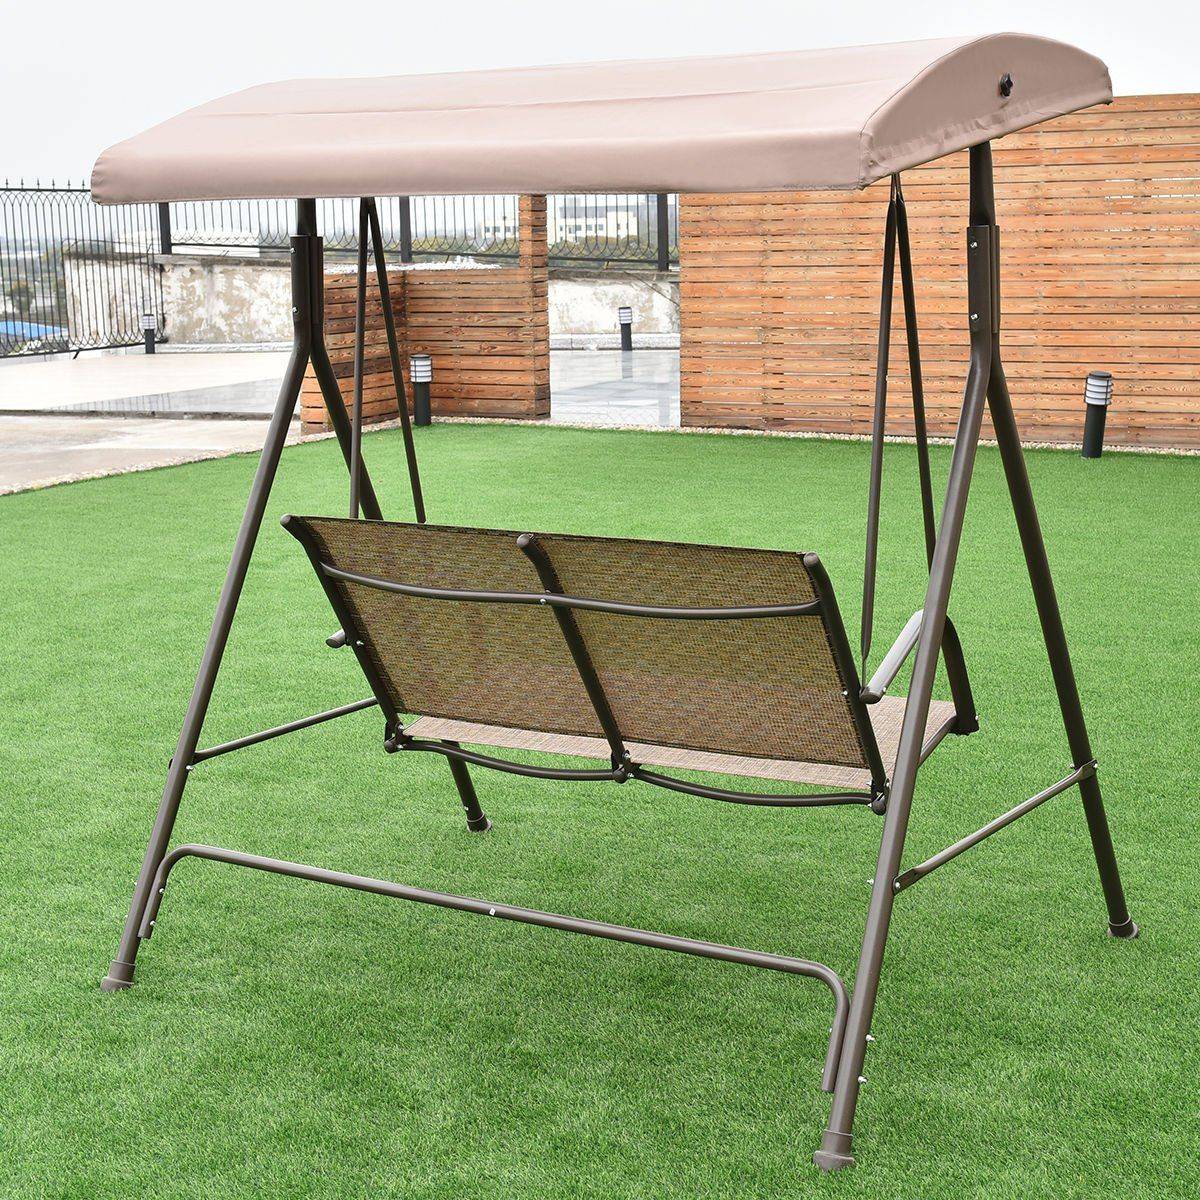 Colibroxoutdoor 2 Person Patio Backyard Porch Swing Hammock With 2 Person Adjustable Tilt Canopy Patio Loveseat Porch Swings (Image 10 of 25)